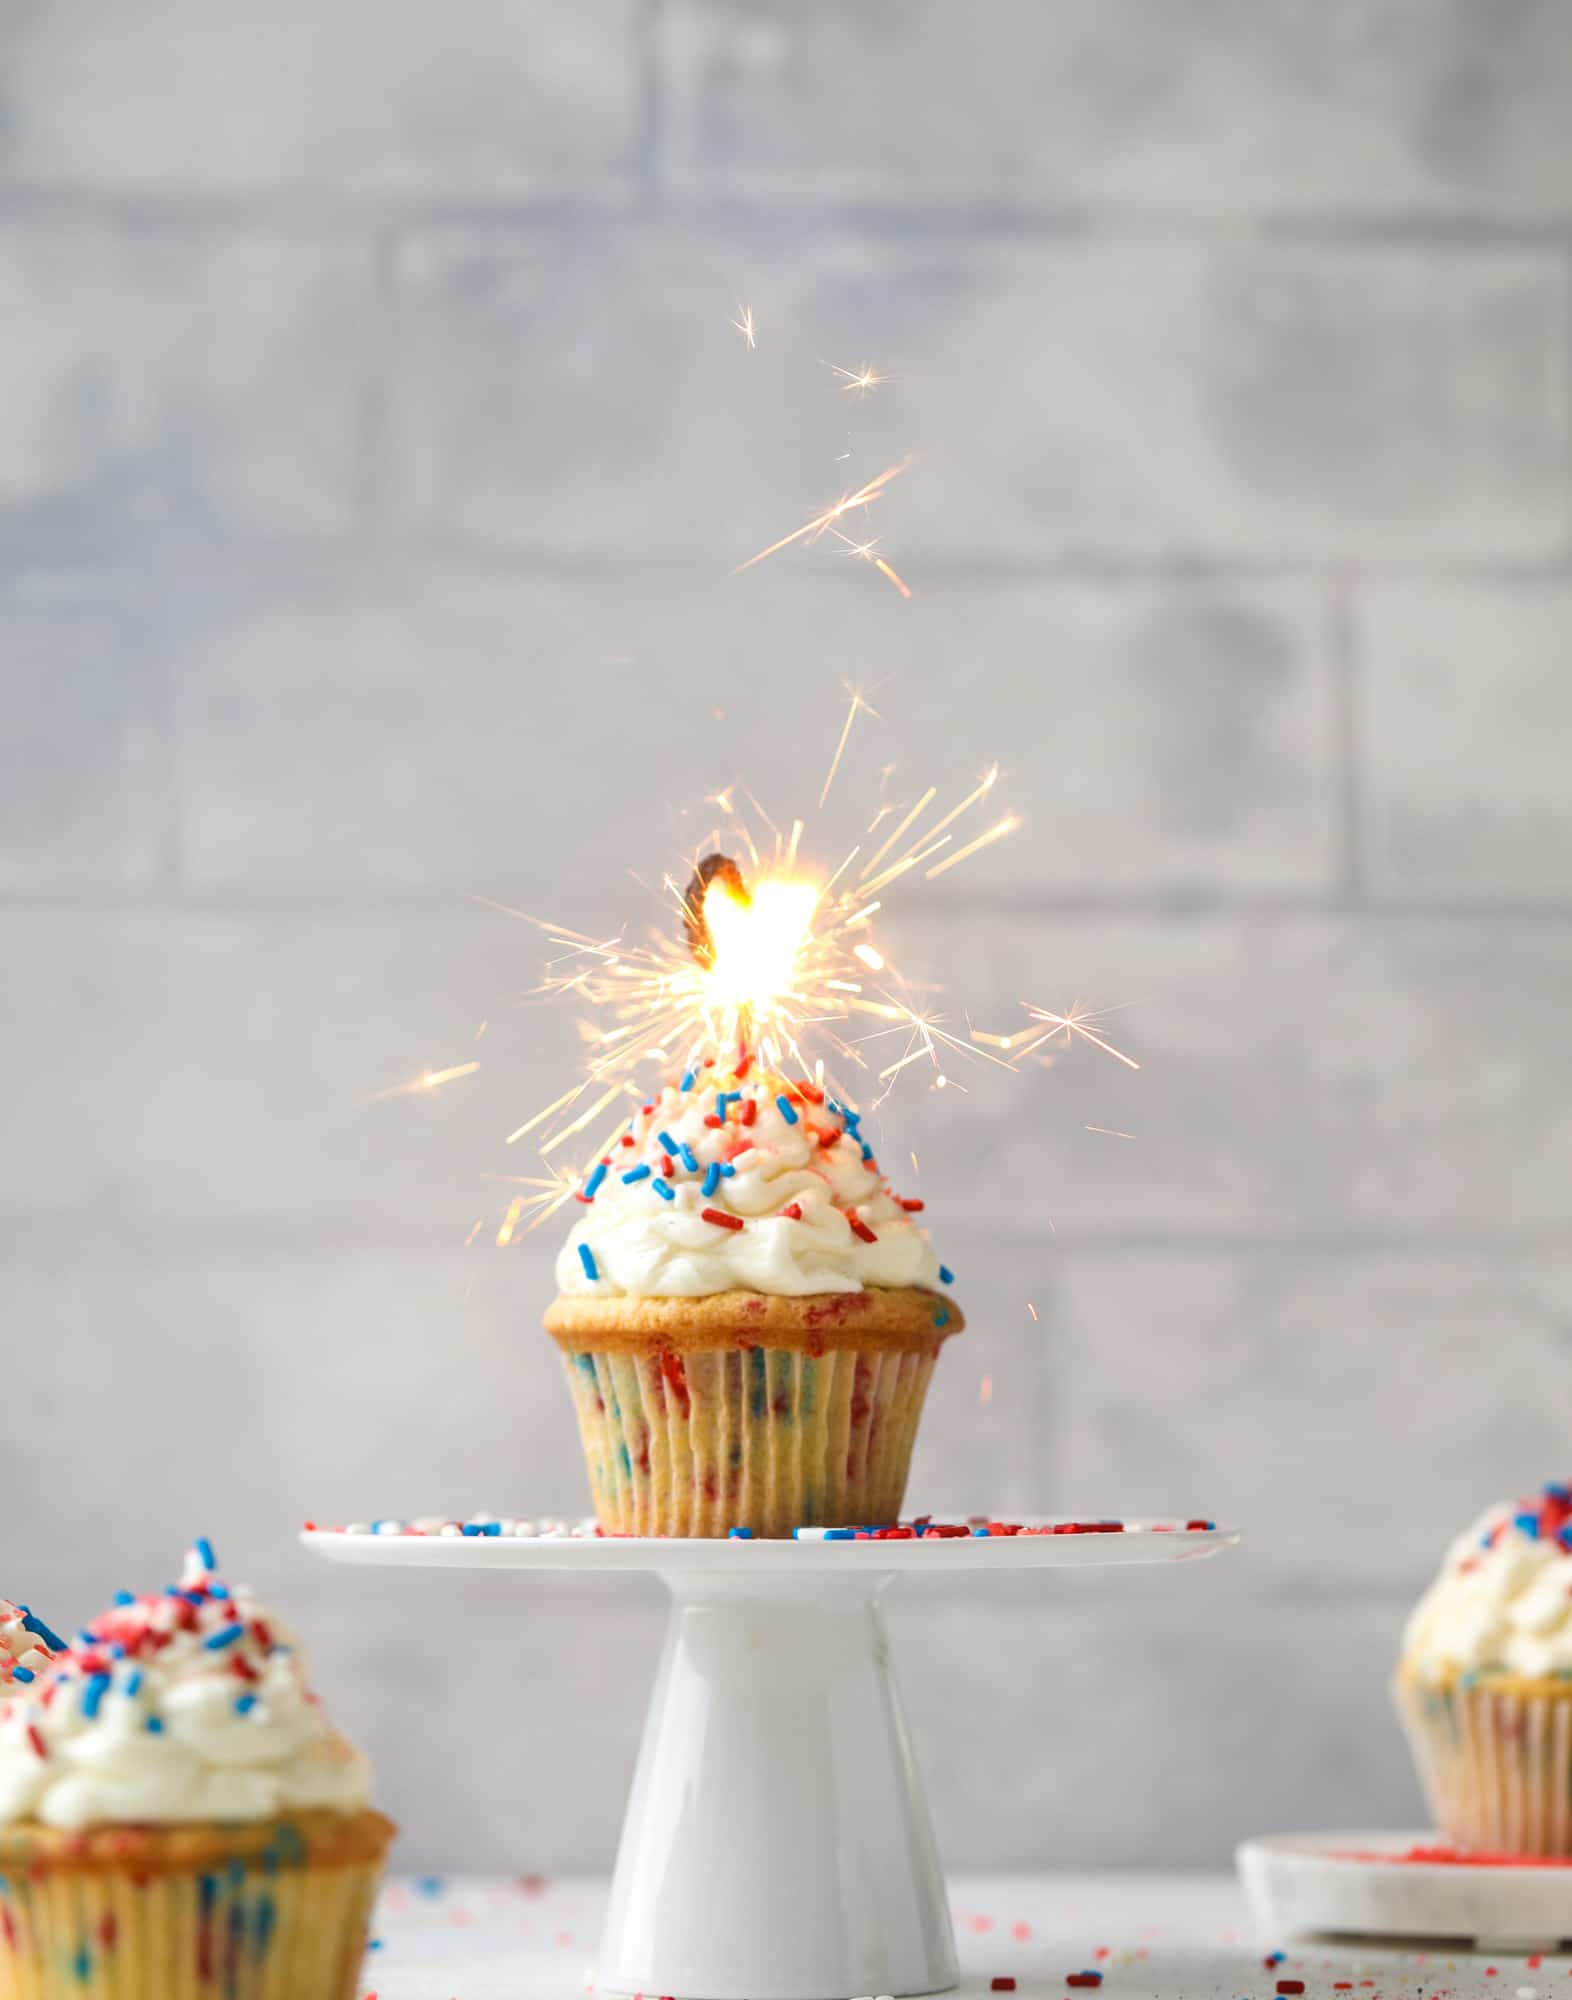 These 4th of July confetti cupcakes are super fun! Firecracker cupcakes with red, white and blue sprinkles and pop rocks candy on top for crackle!